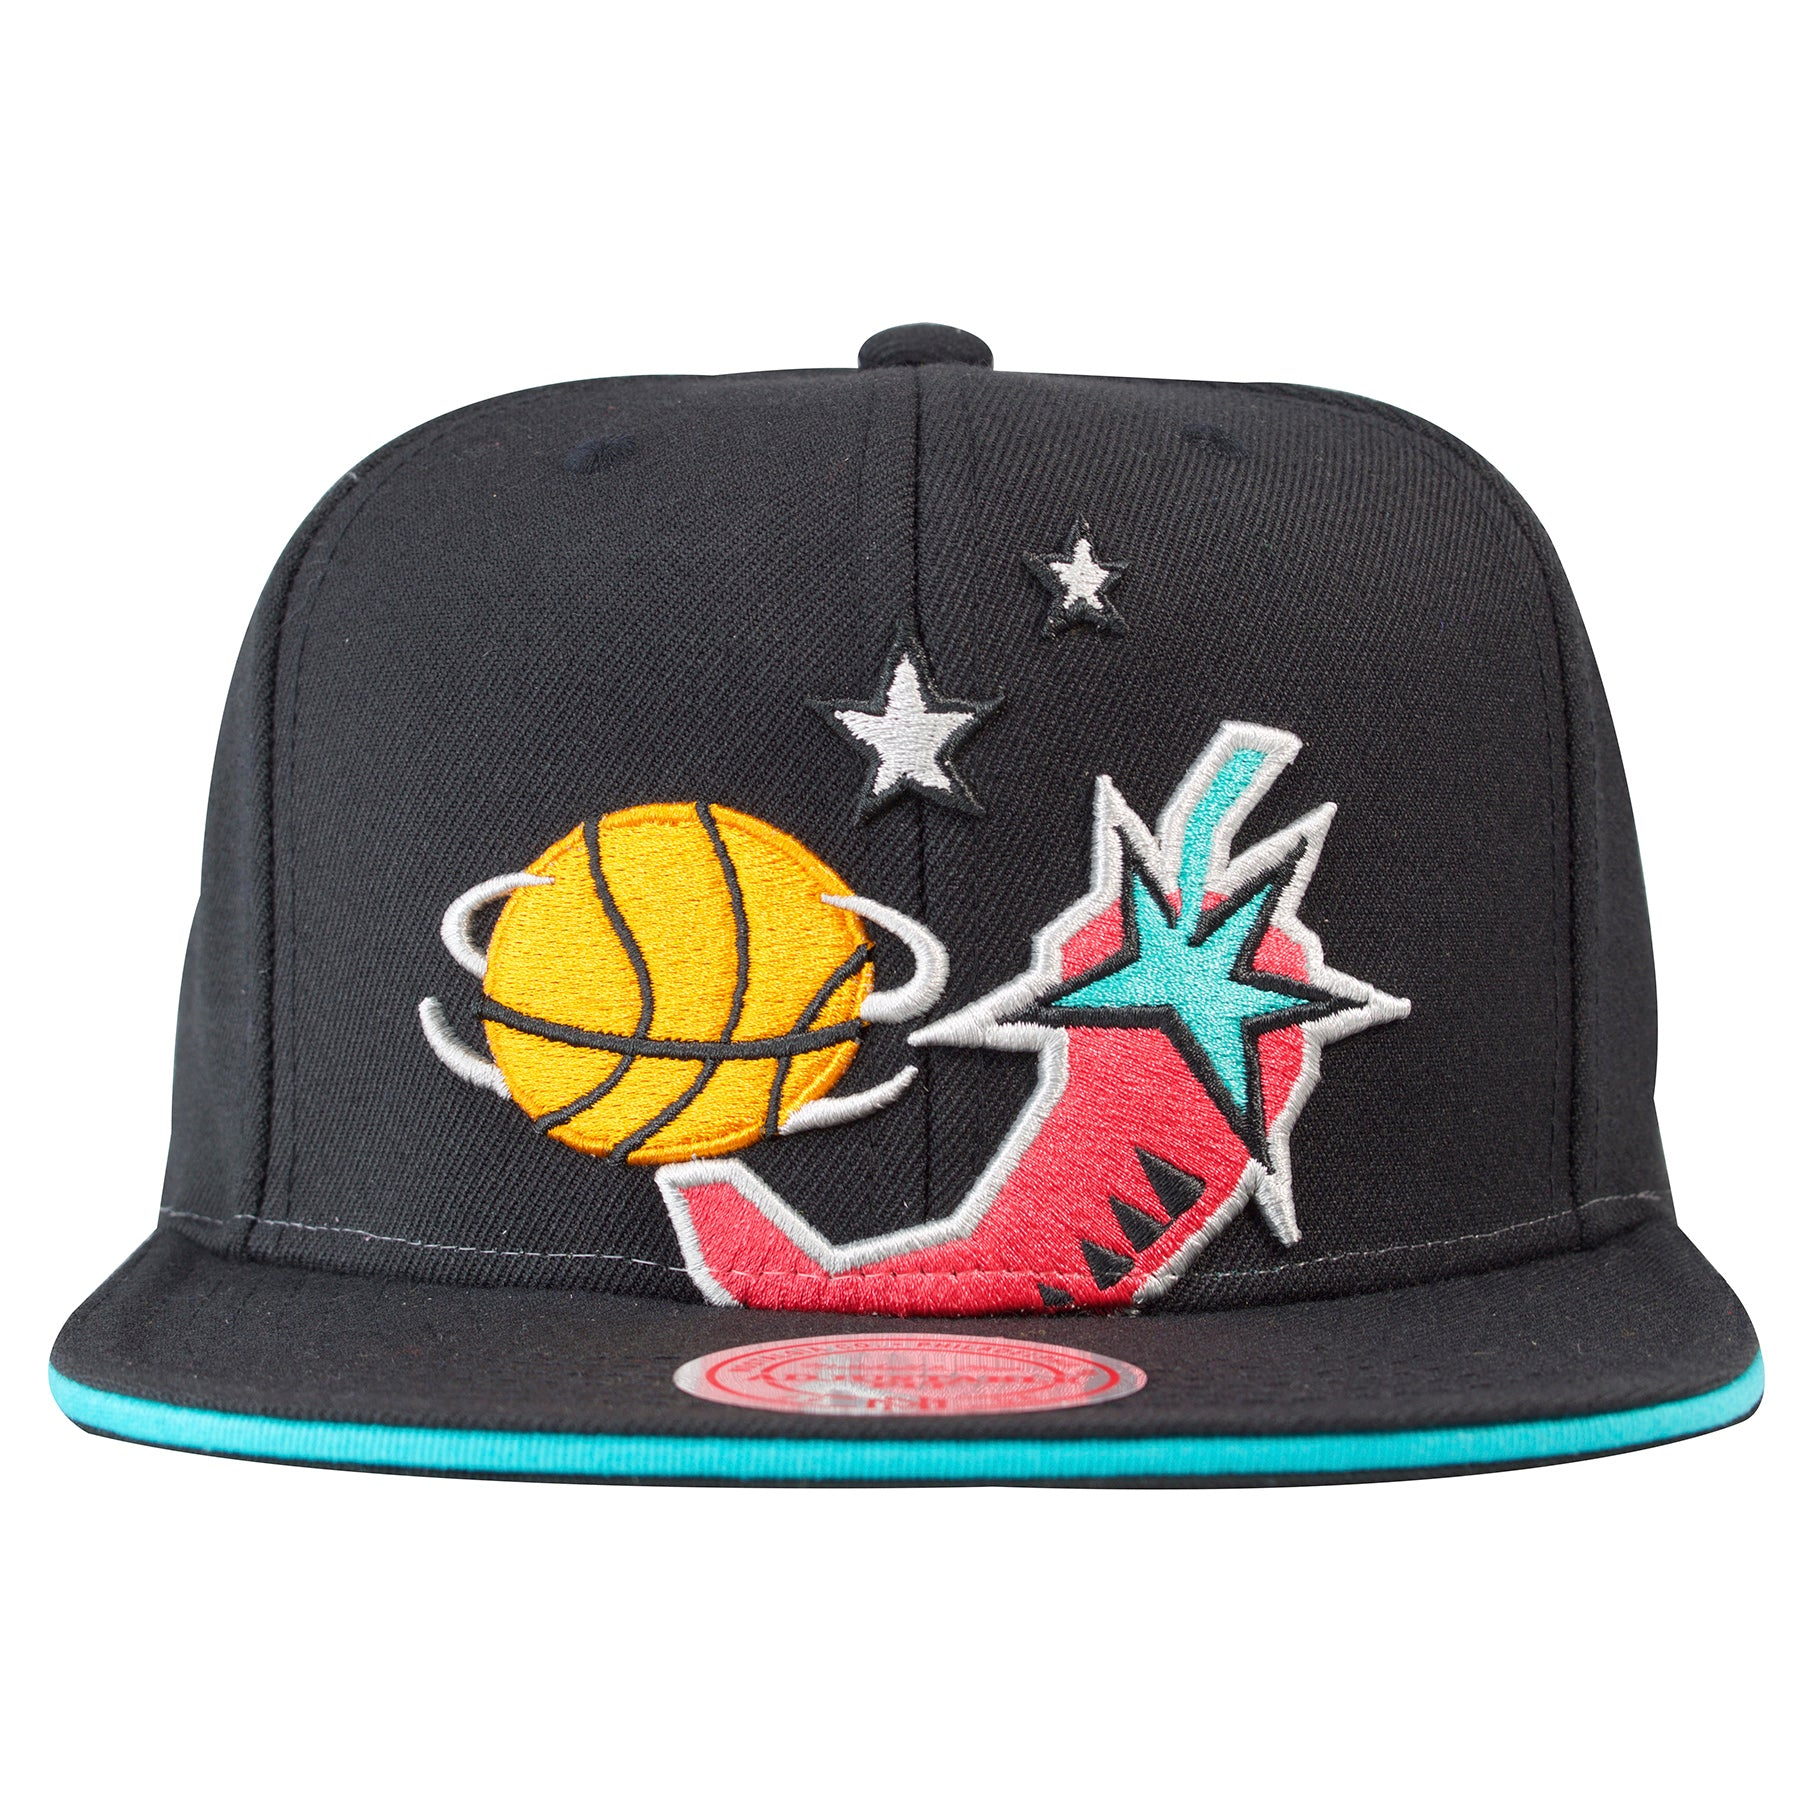 53b38ec11eb0 on the front of the black 1996 NBA All Star Weekend vintage black snapback  hat is